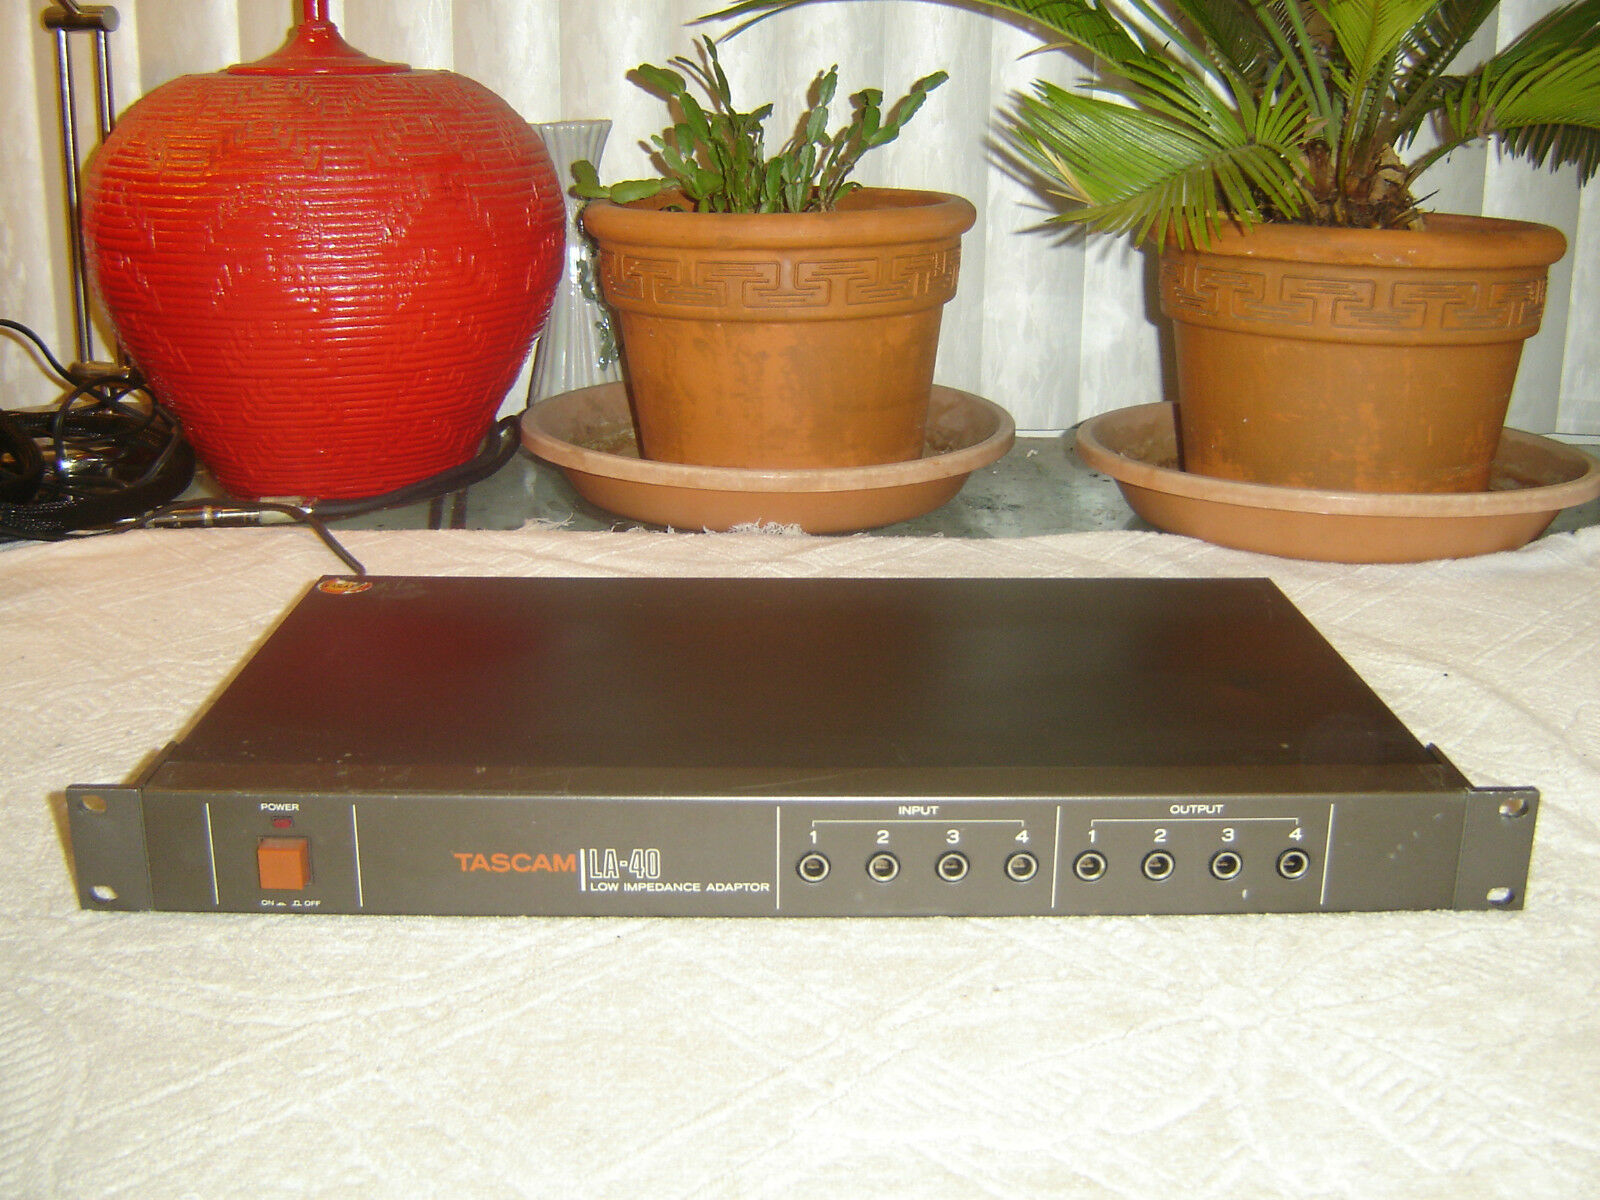 Tascam LA-40, Low Impedance Adapter, Vintage Rack, Repair or As Is